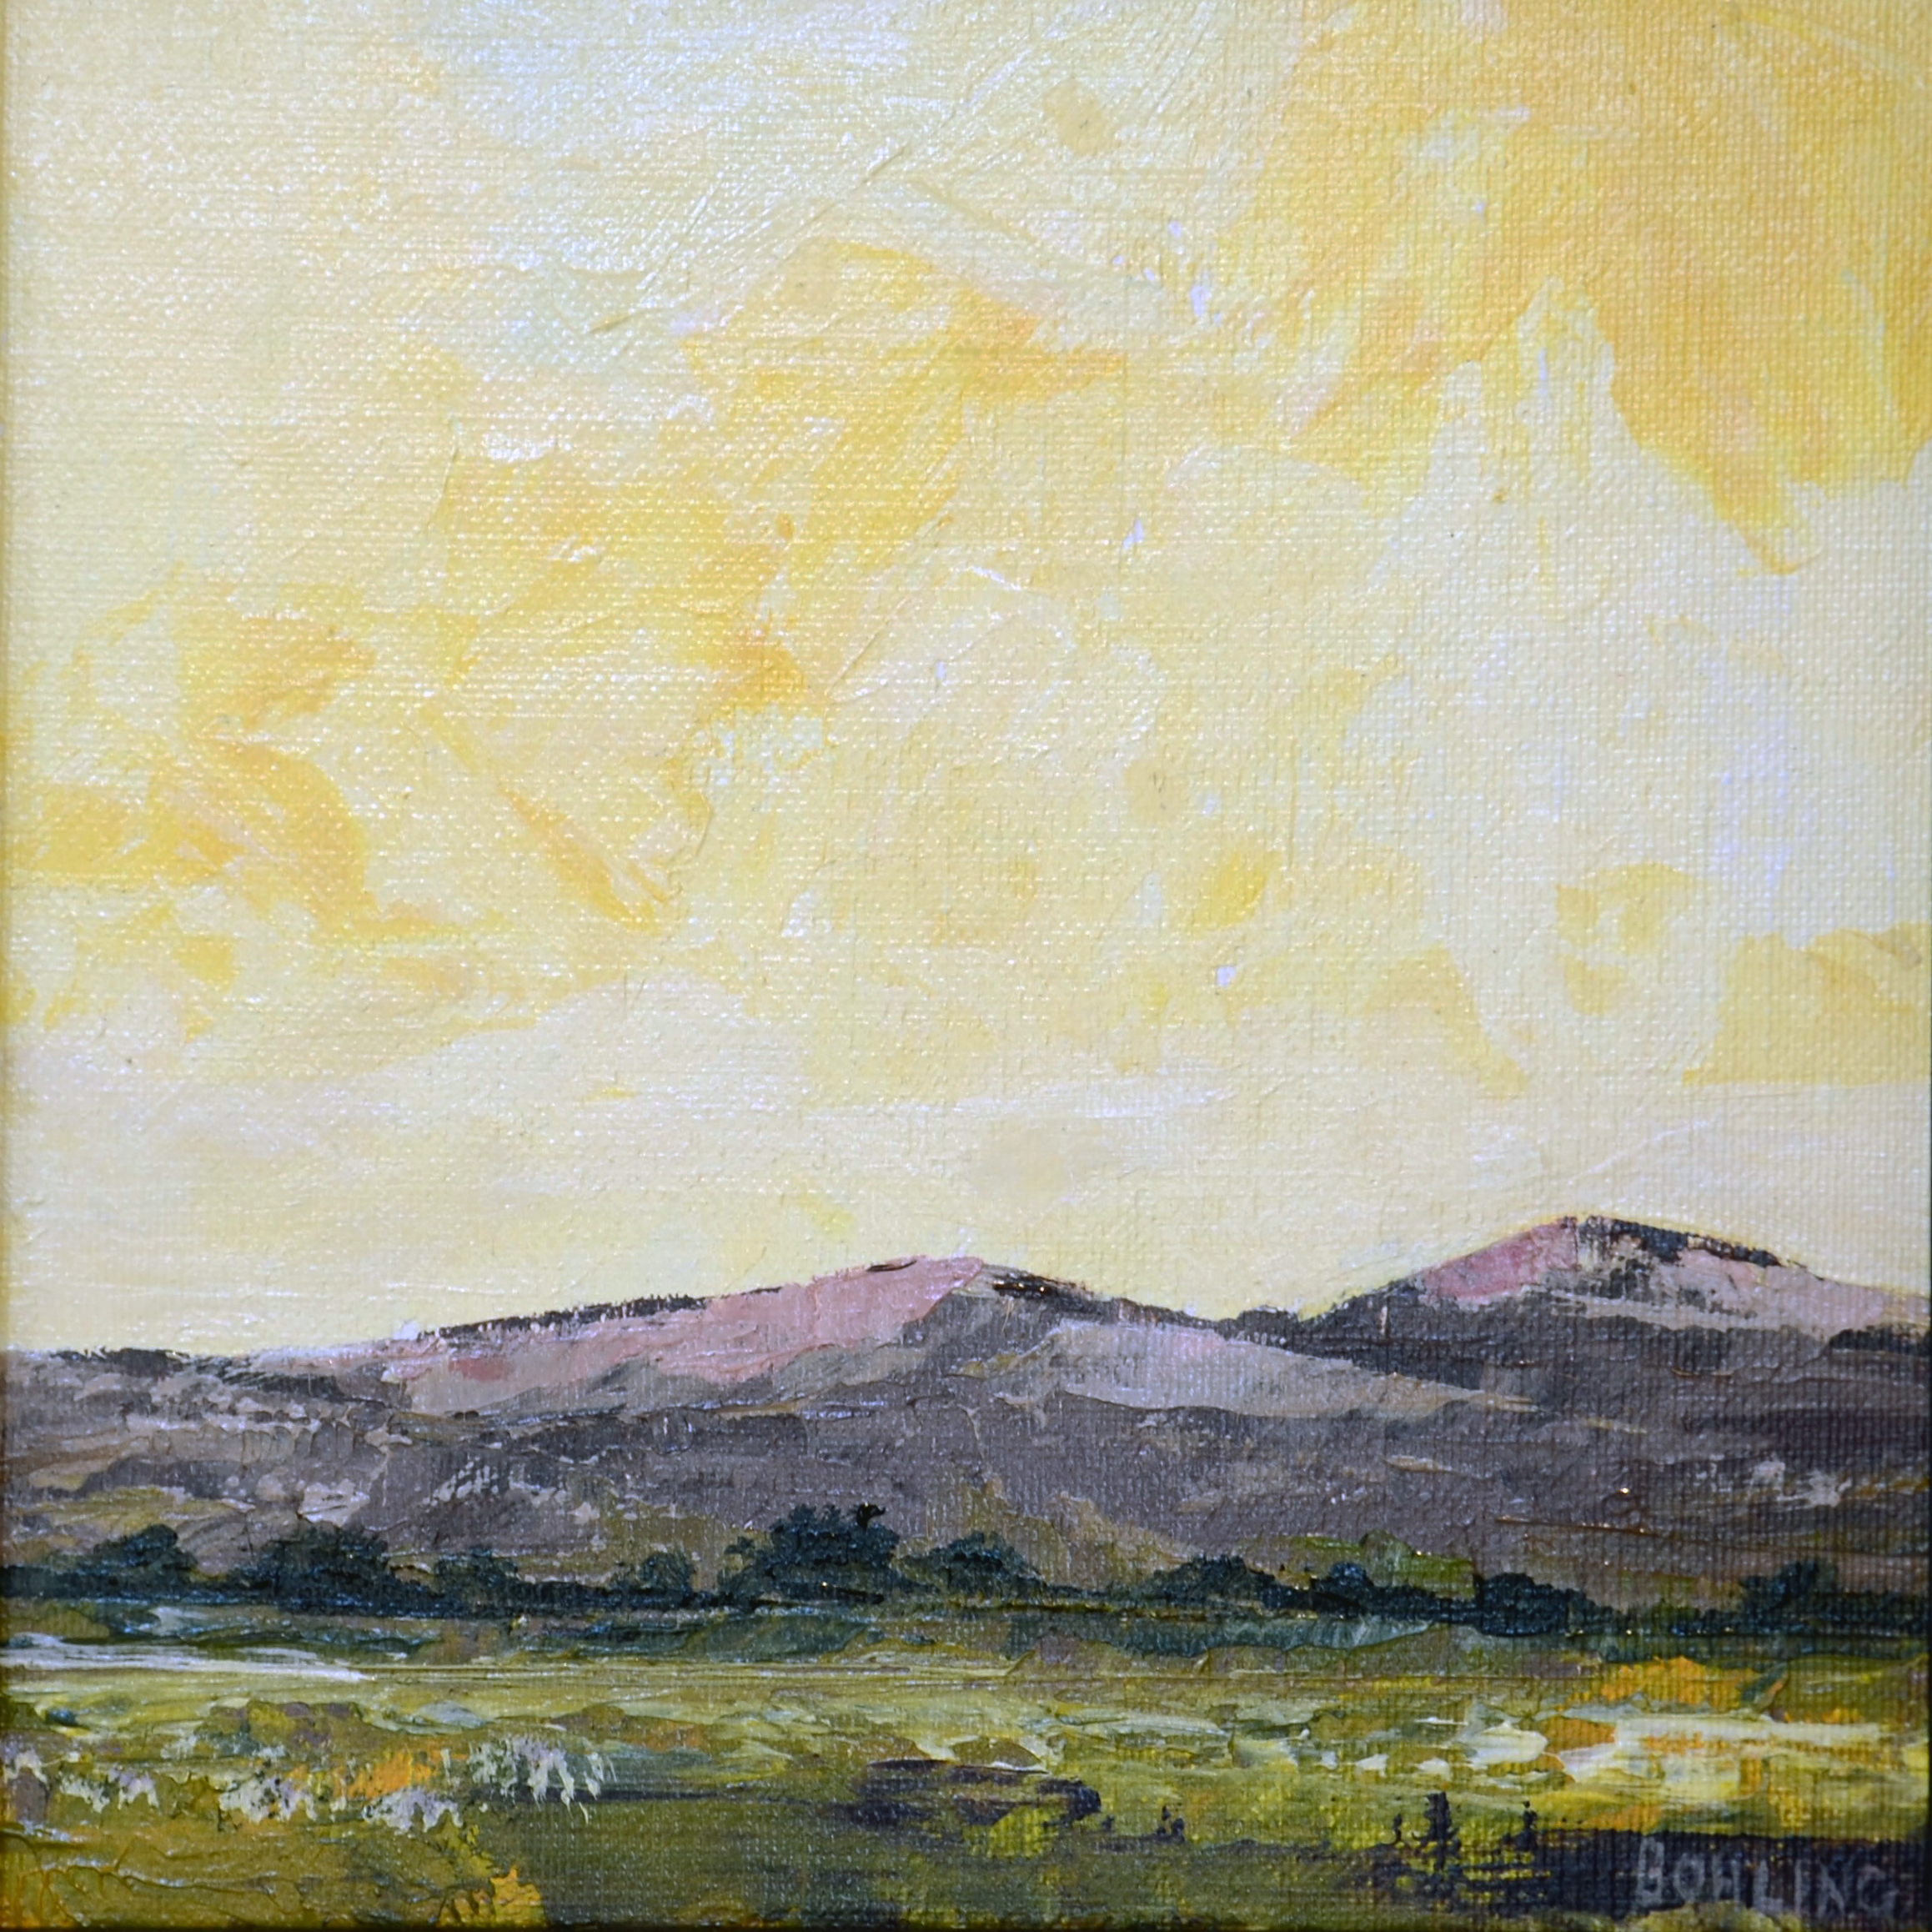 James Bohling - Watching Over the Grasses